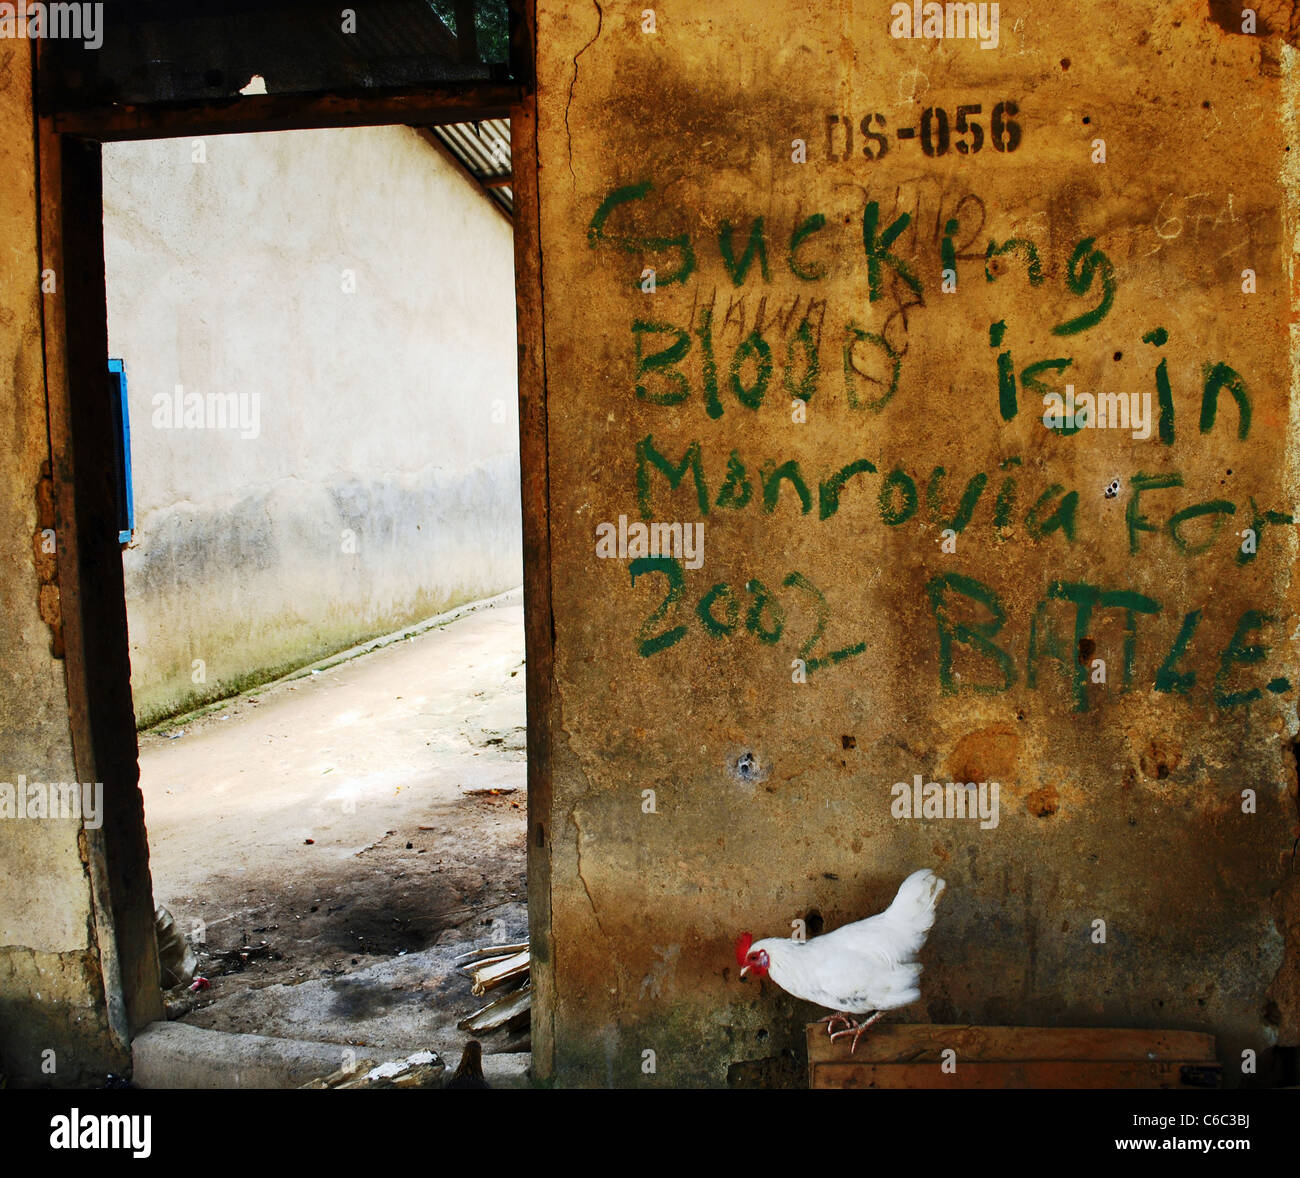 Graffiti - SUCKING BLOOD IS IN MONROVIA FOR 2002 BATTLE - left by LURD rebels on a wall in Bolahun, Liberia - Stock Image